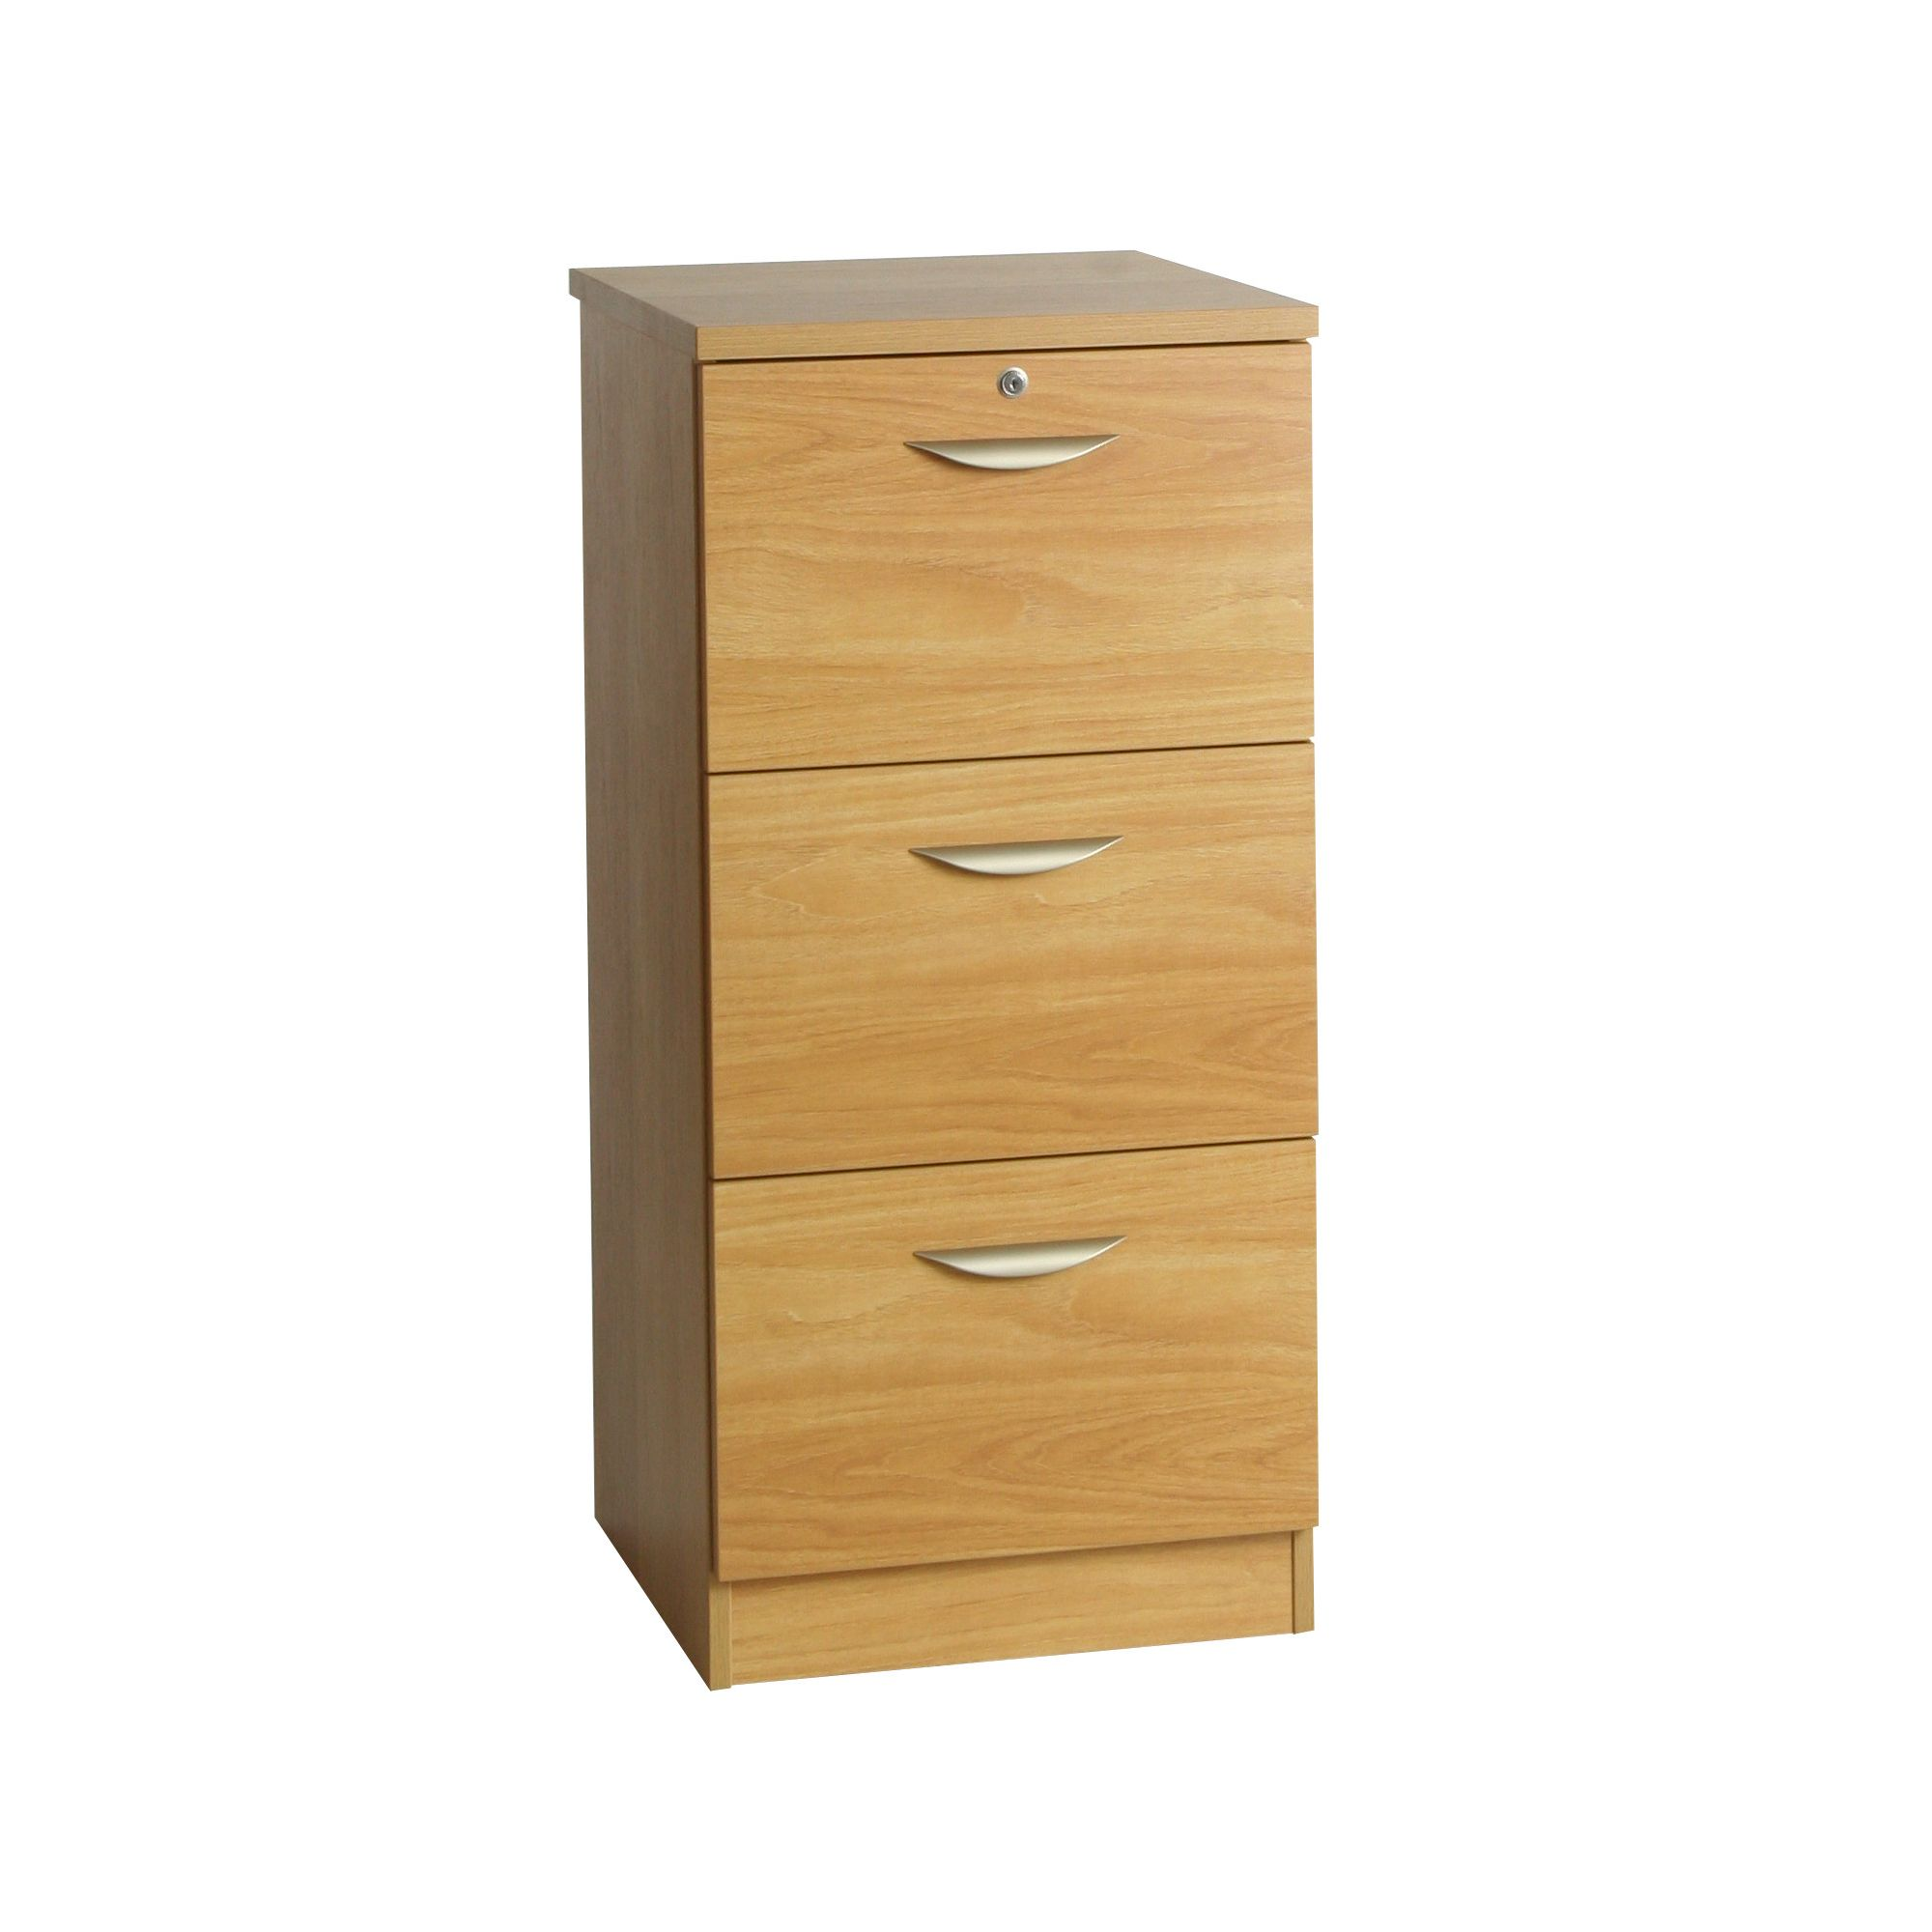 Enduro Three Drawer Tall Wooden Filing Cabinet - English Oak at Tesco Direct